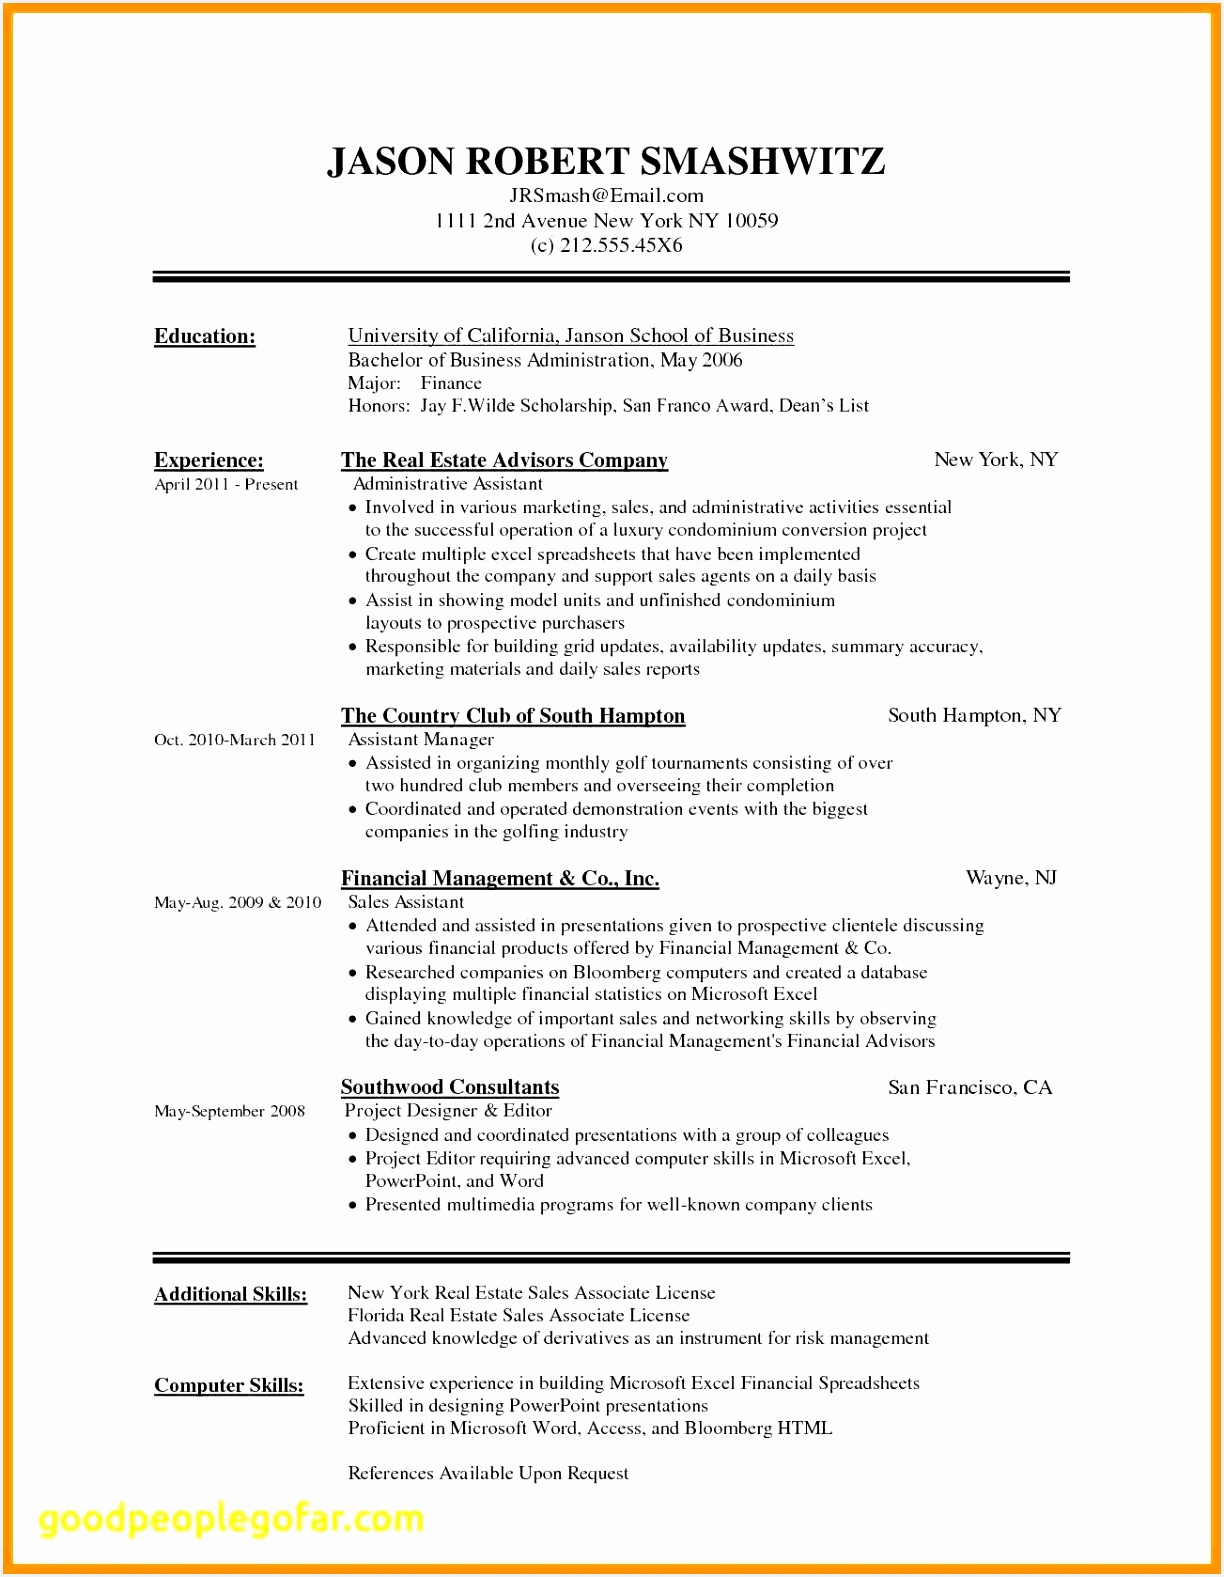 Cv Templates Free Download Word Document Cwwfc Unique √ Resume Templates Download Free Word Reference Elegant Pr Resume Of 7 Cv Templates Free Download Word Document